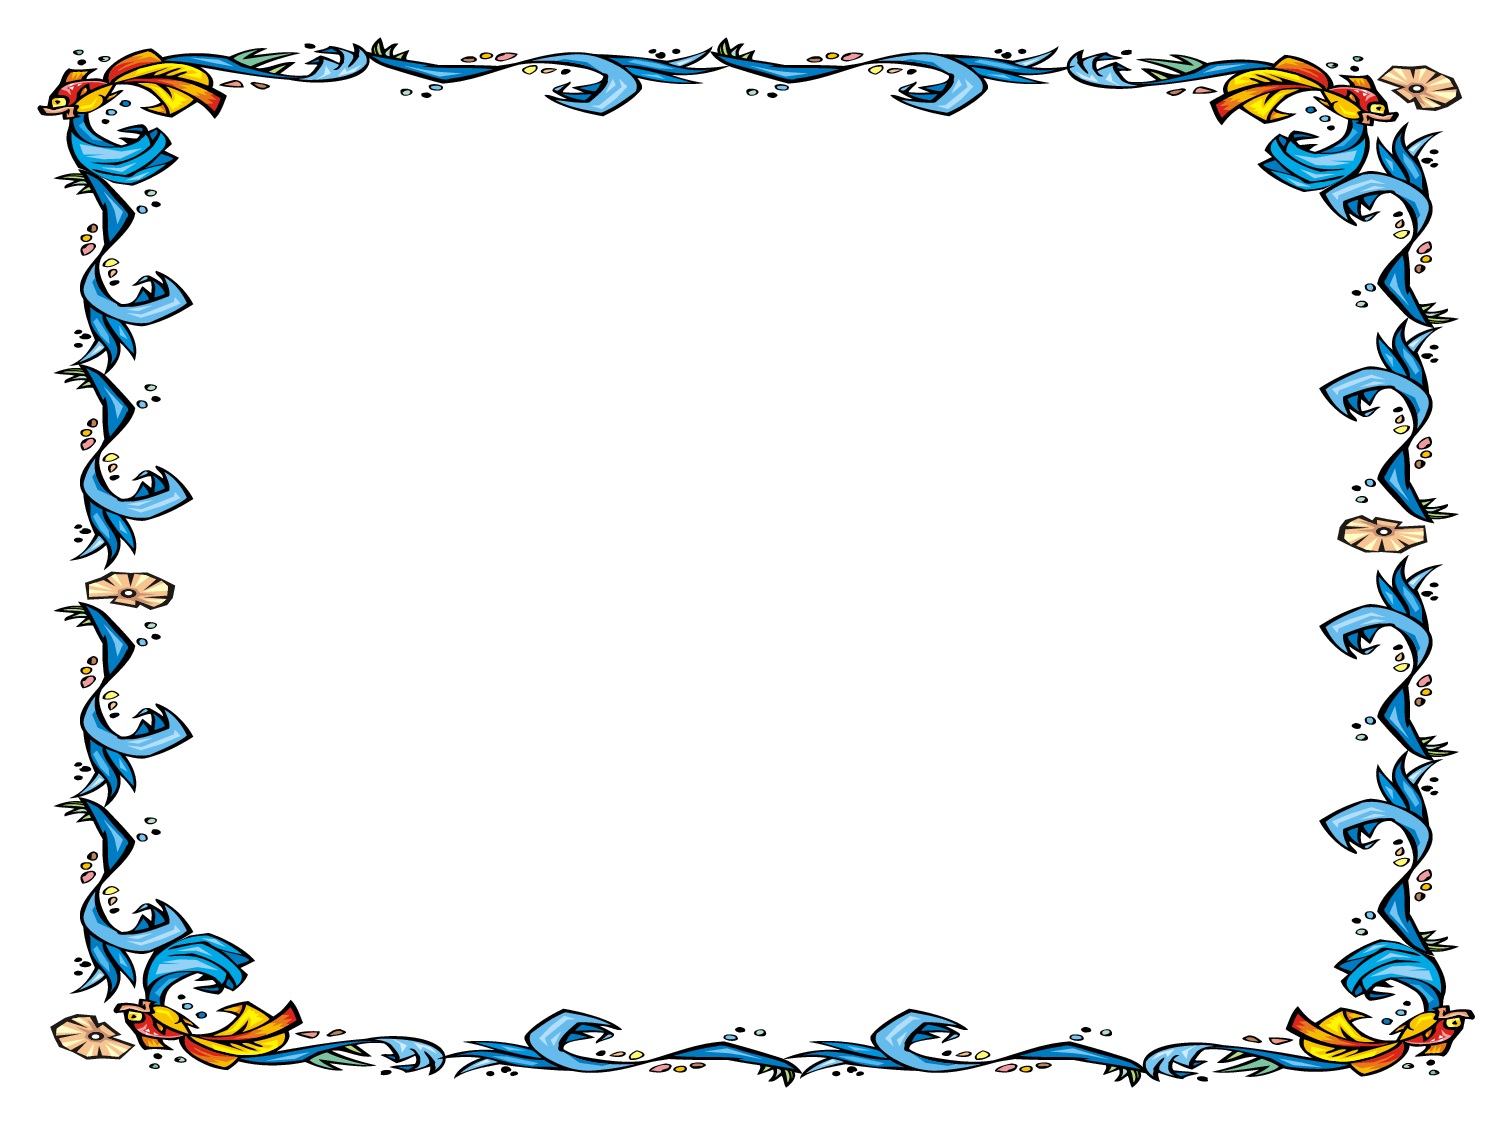 Free Certificate Borders, Download Free Clip Art, Free Clip Art on.